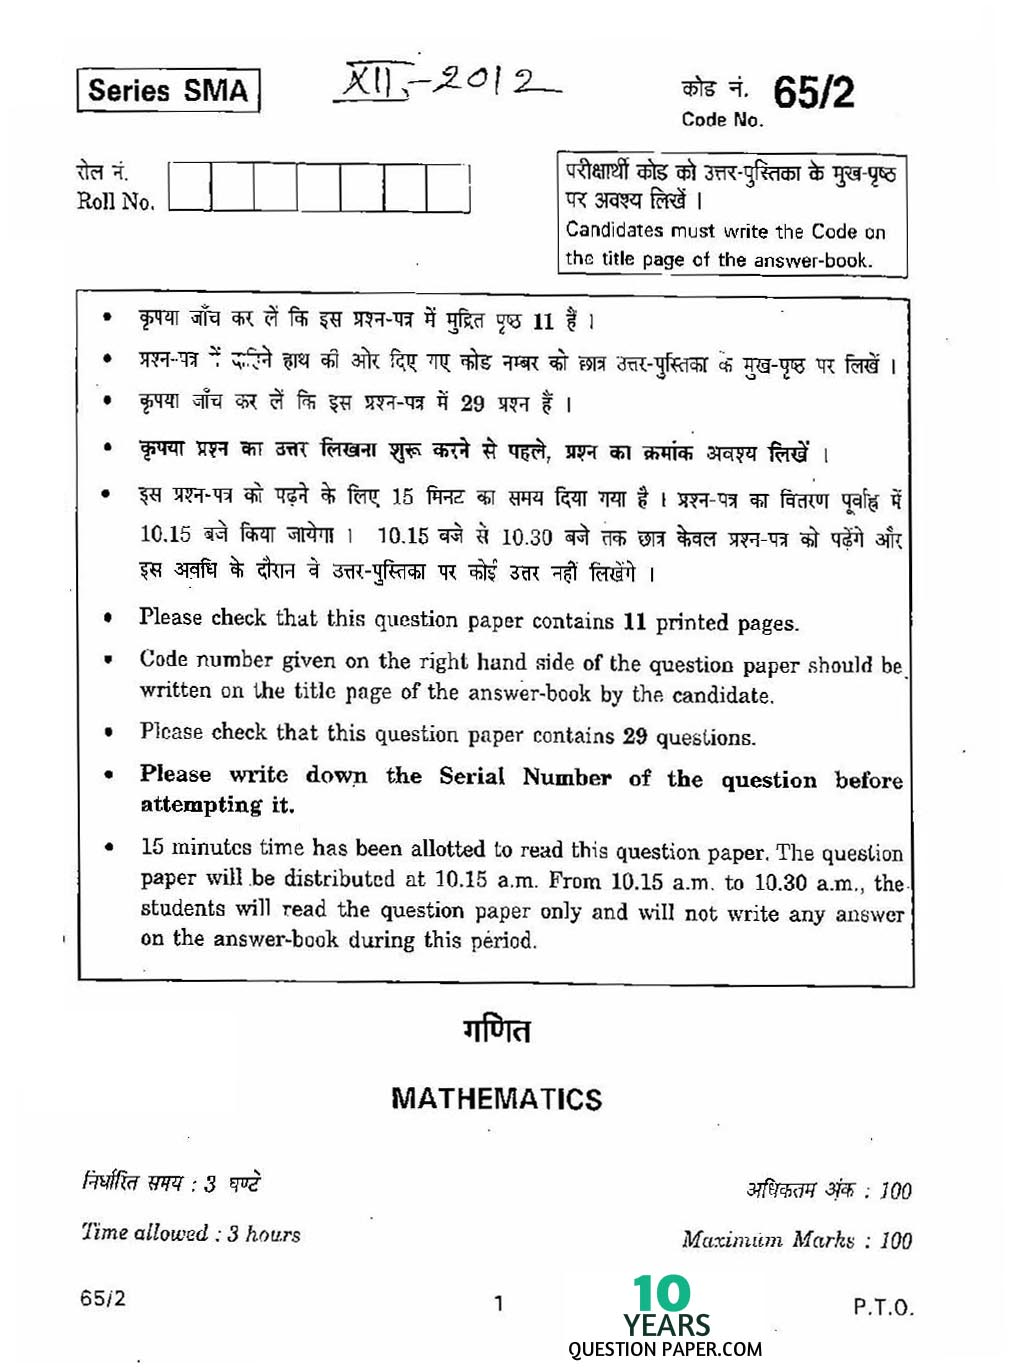 cbse class 12th 2012 Mathematics question paper